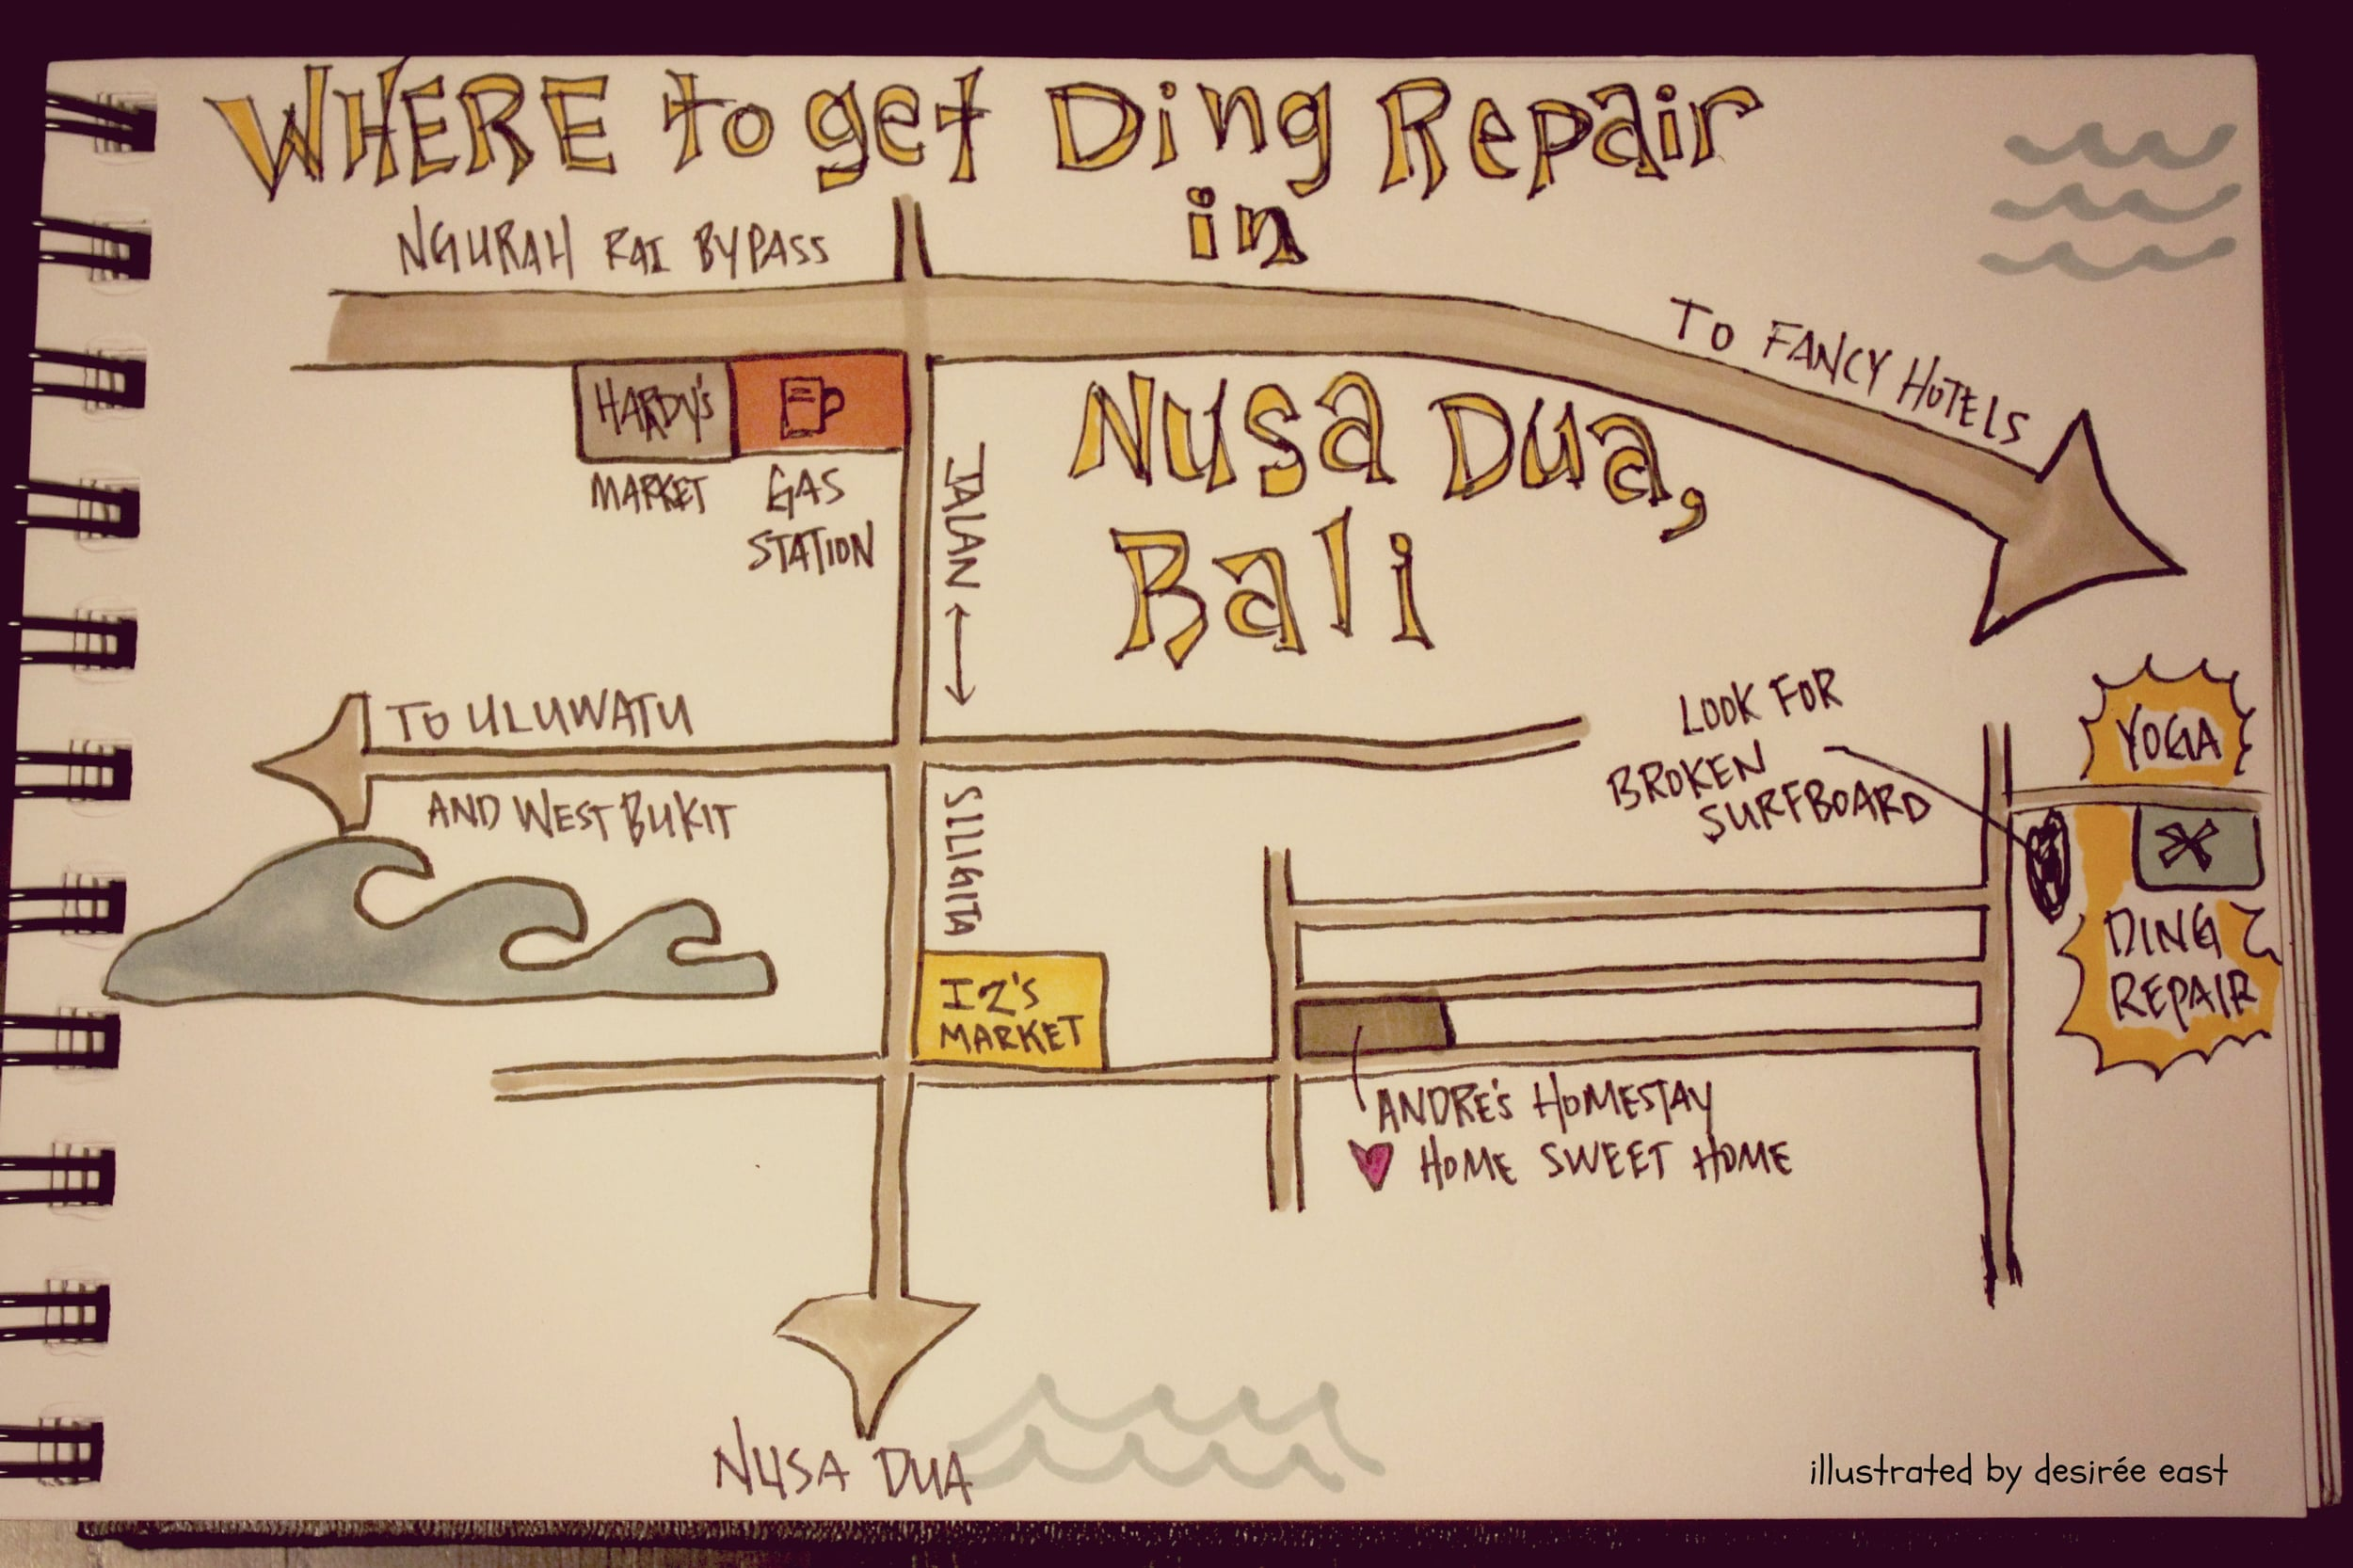 map of how to find yoga's ding repair shop in nusa dua bali. illustrated by desiree east